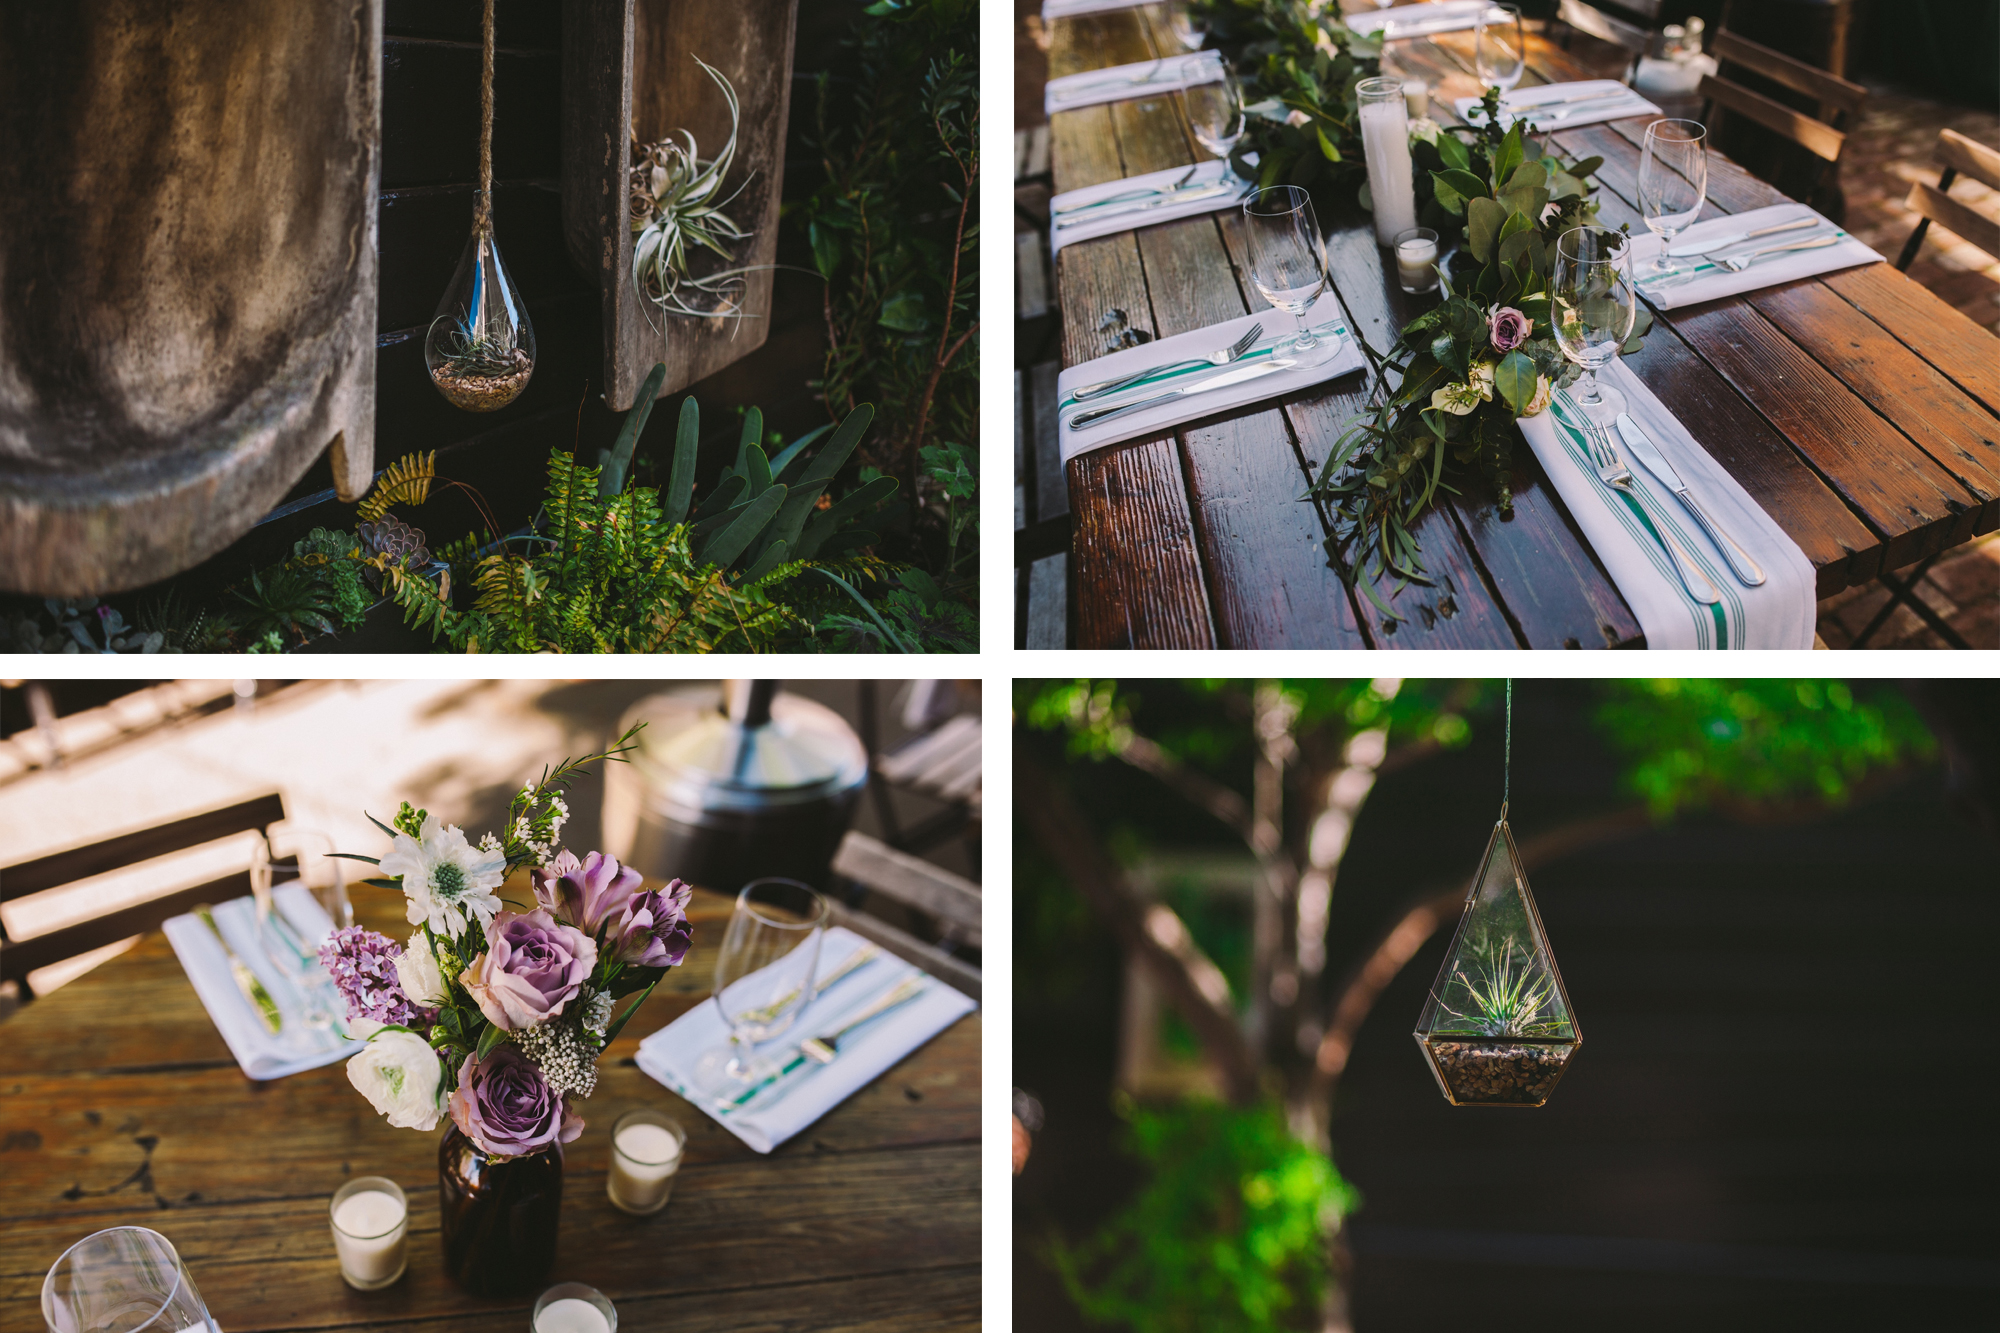 San Francisco City Hall & Stable Cafe Wedding Photography 4 Collage 2.jpg